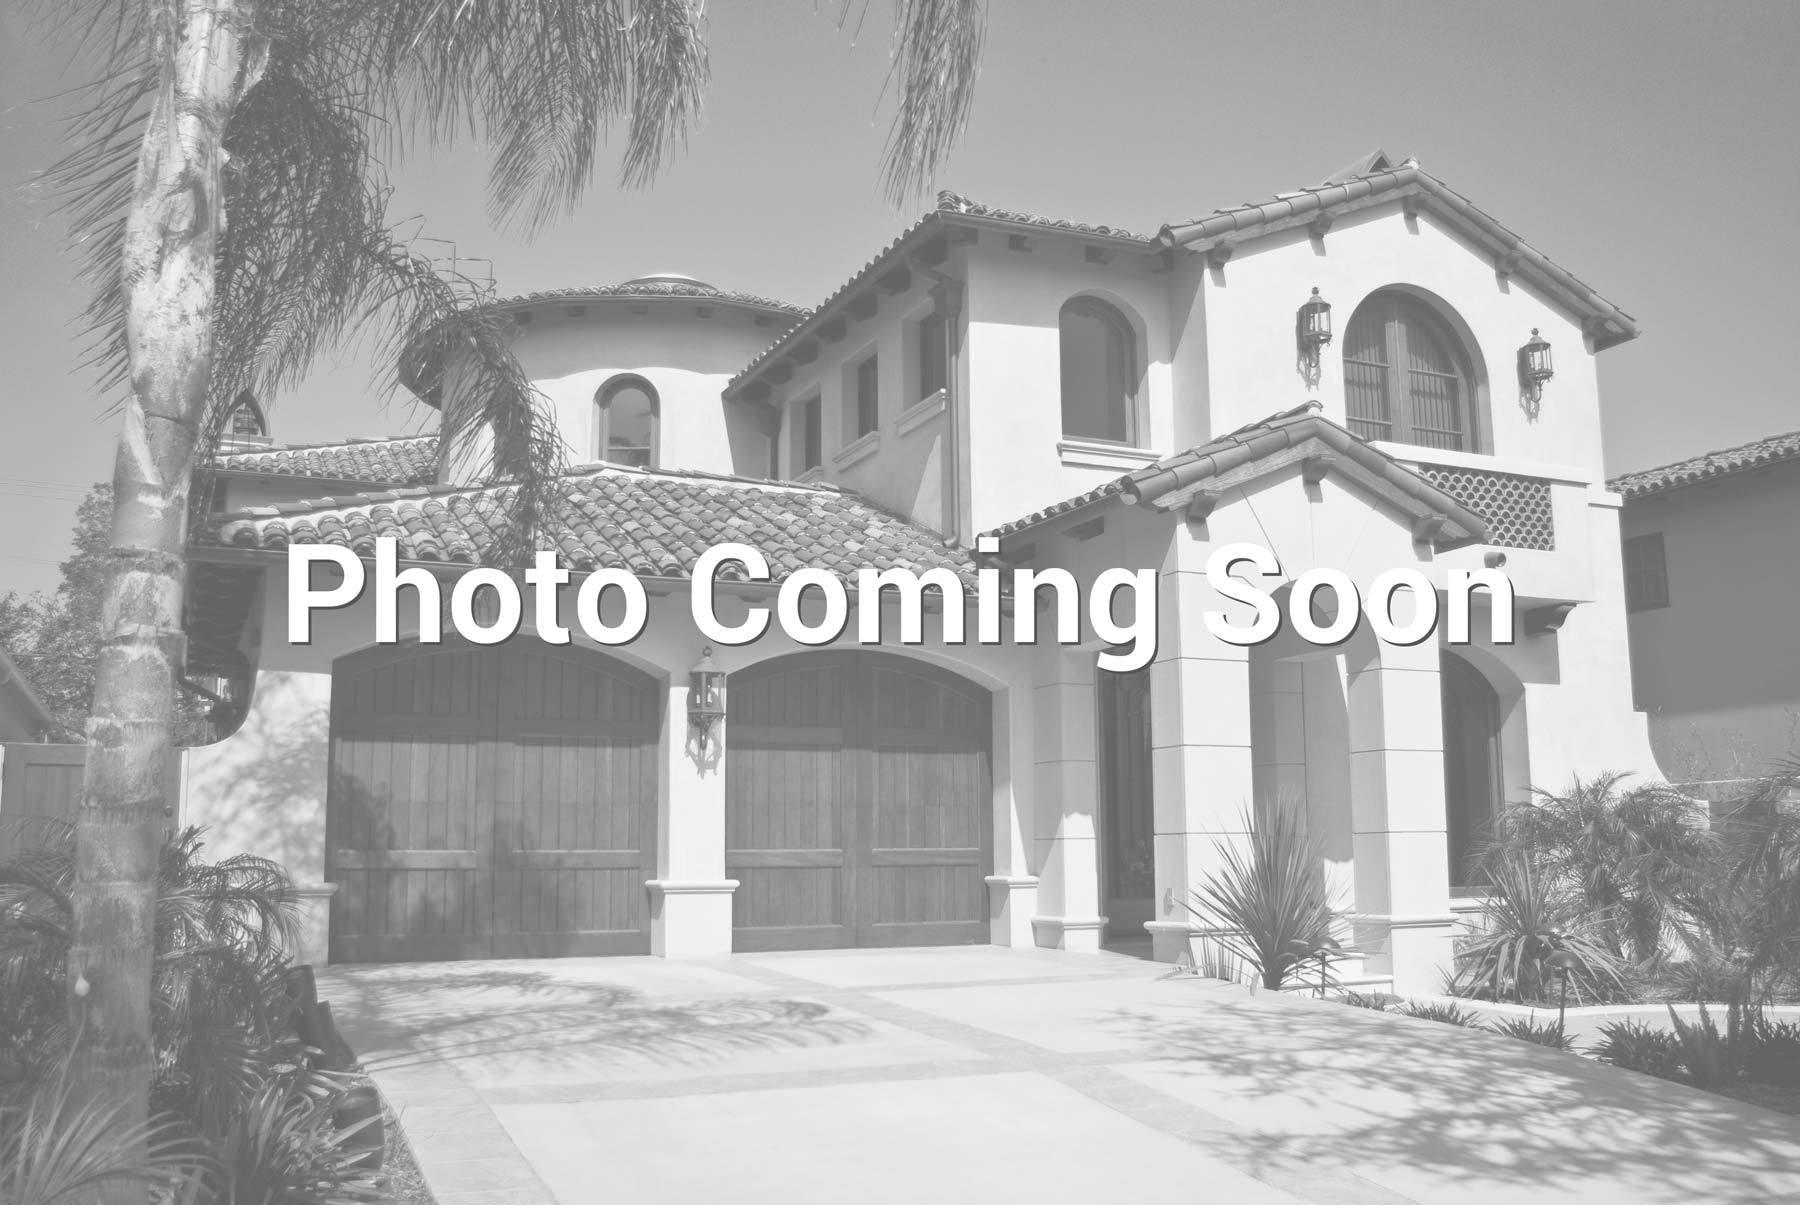 $525,000 - 4Br/3Ba - Home for Sale in Scottsdale Stonebrook, Scottsdale